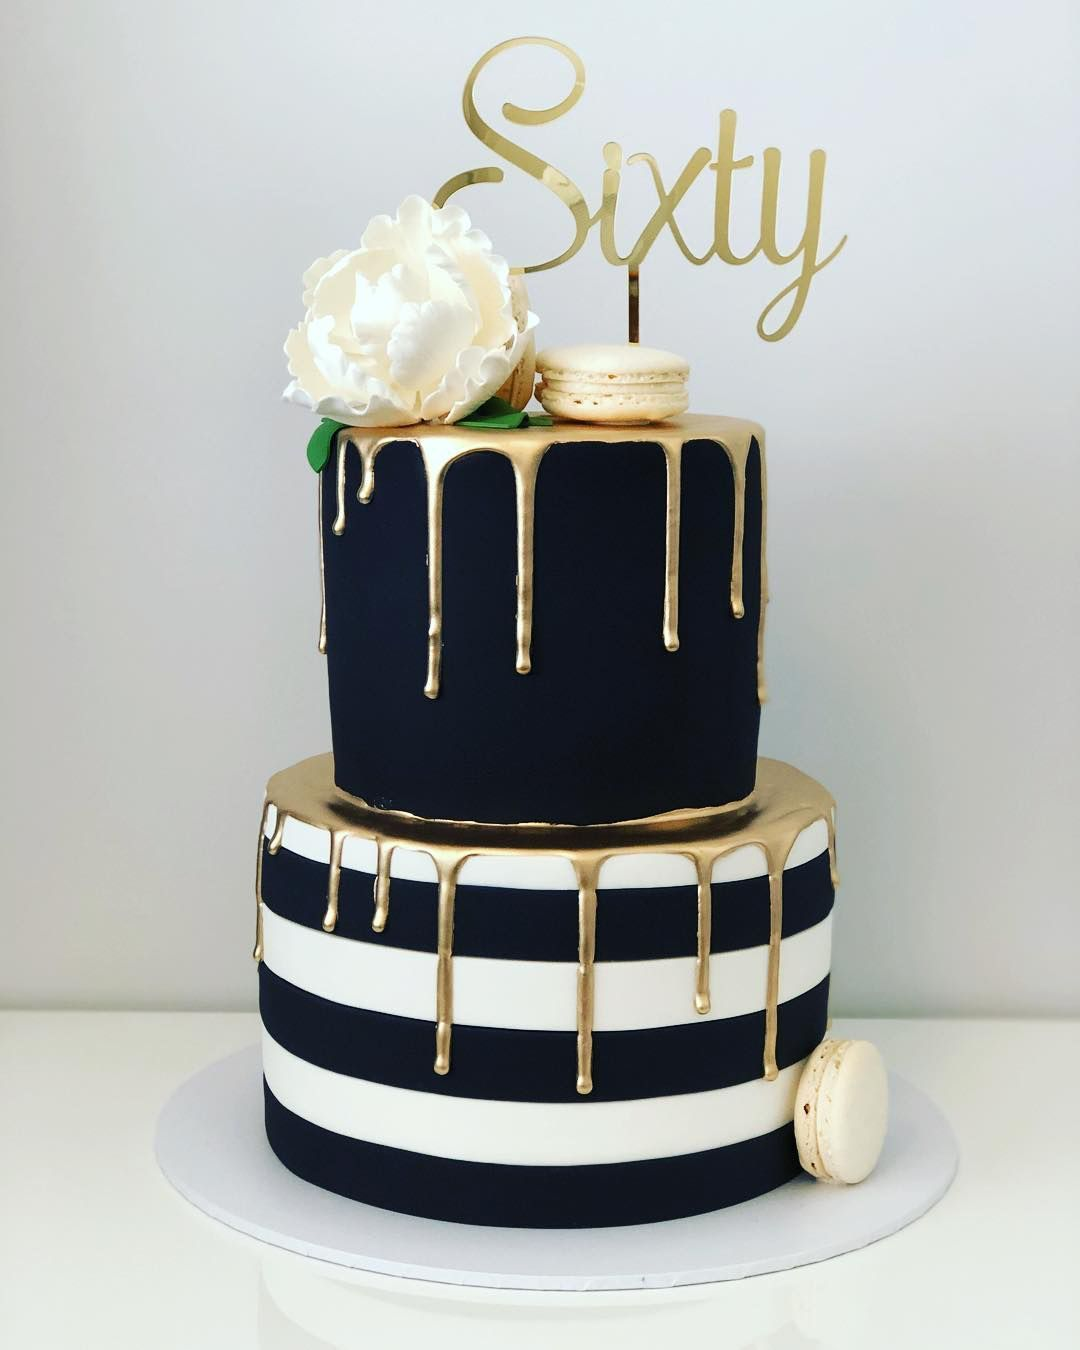 Super Classy Gold Black And White On This Cake By